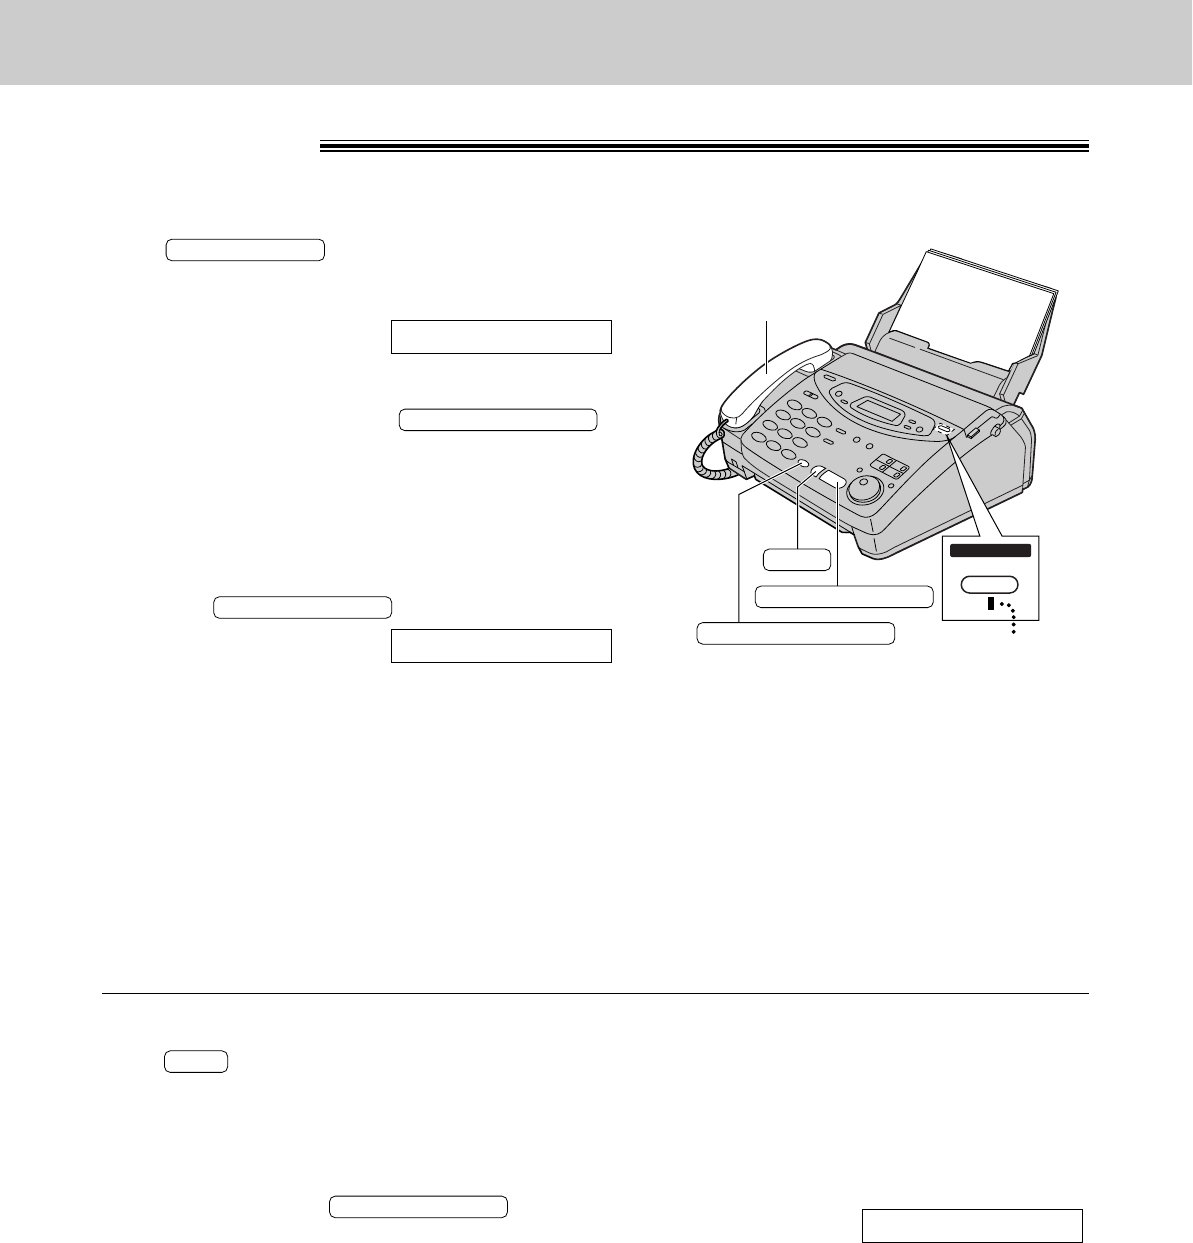 Panasonic KX FP121 User Manual To The Dbefee12 5188 45a1